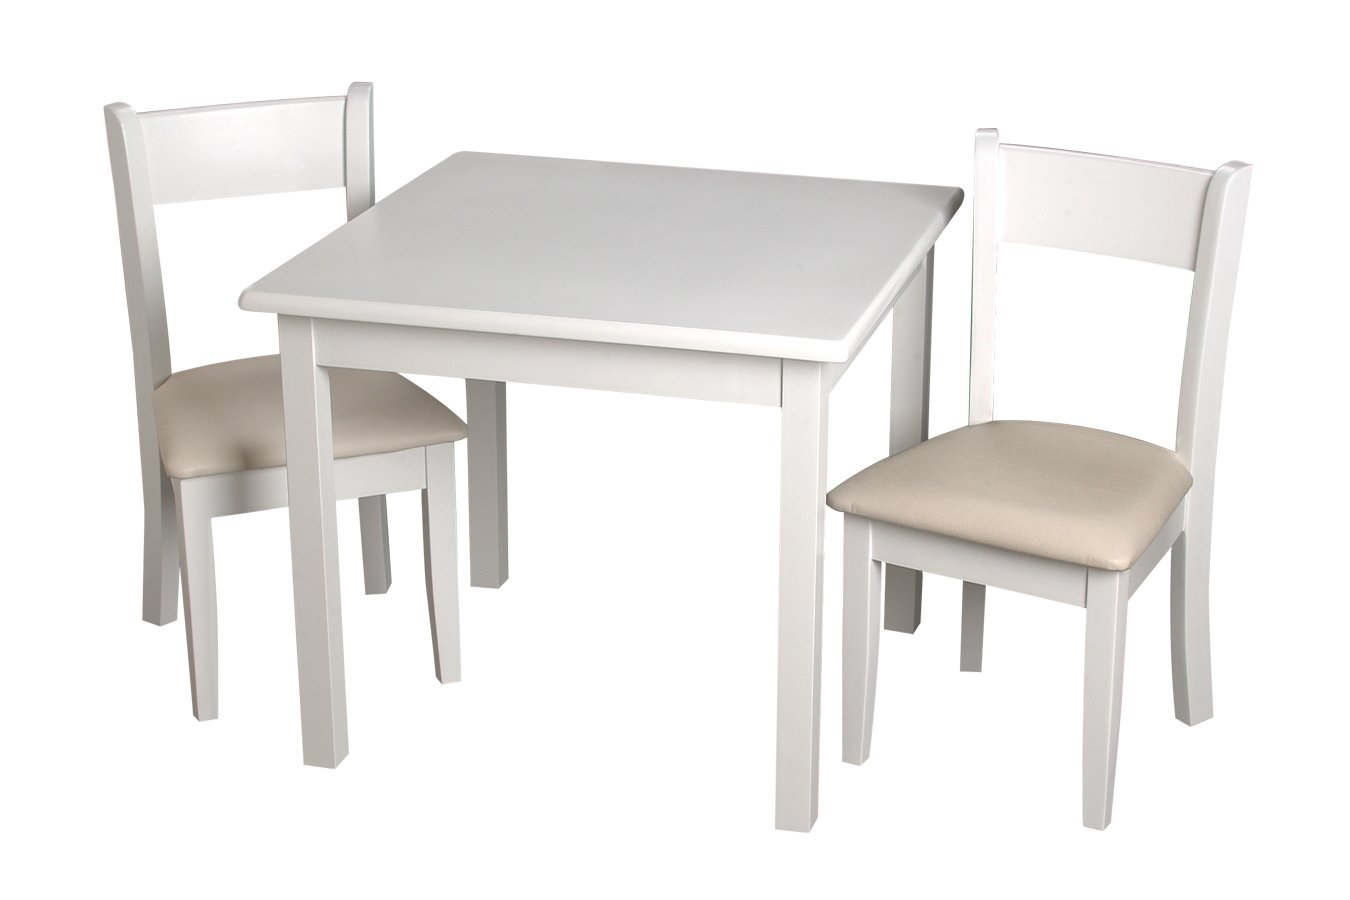 Gift Mark Childrens Square Table with 2 Matching Off White Upholstered Chairs and Seat Cushion Cherry 23004C